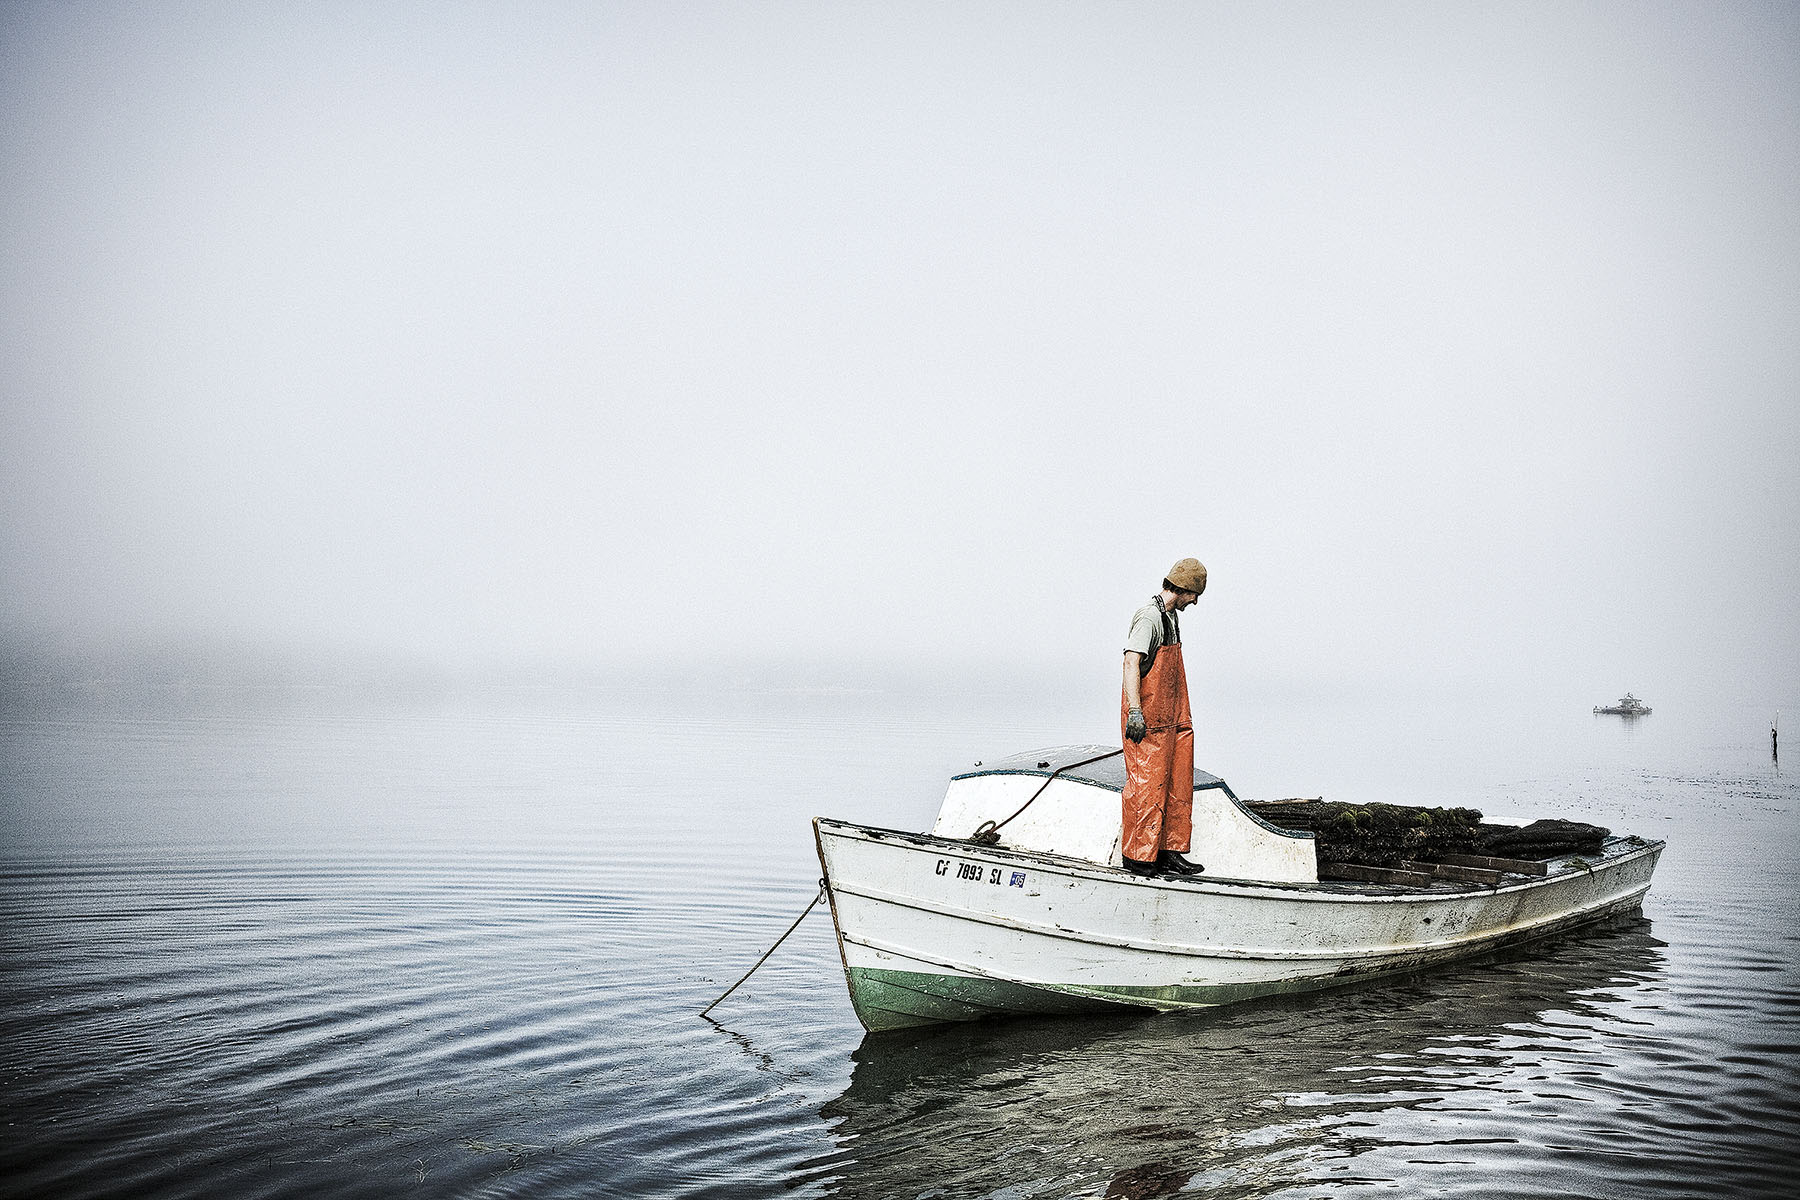 Old World Fisherman in Boat | Dovis Bird Agency Photography